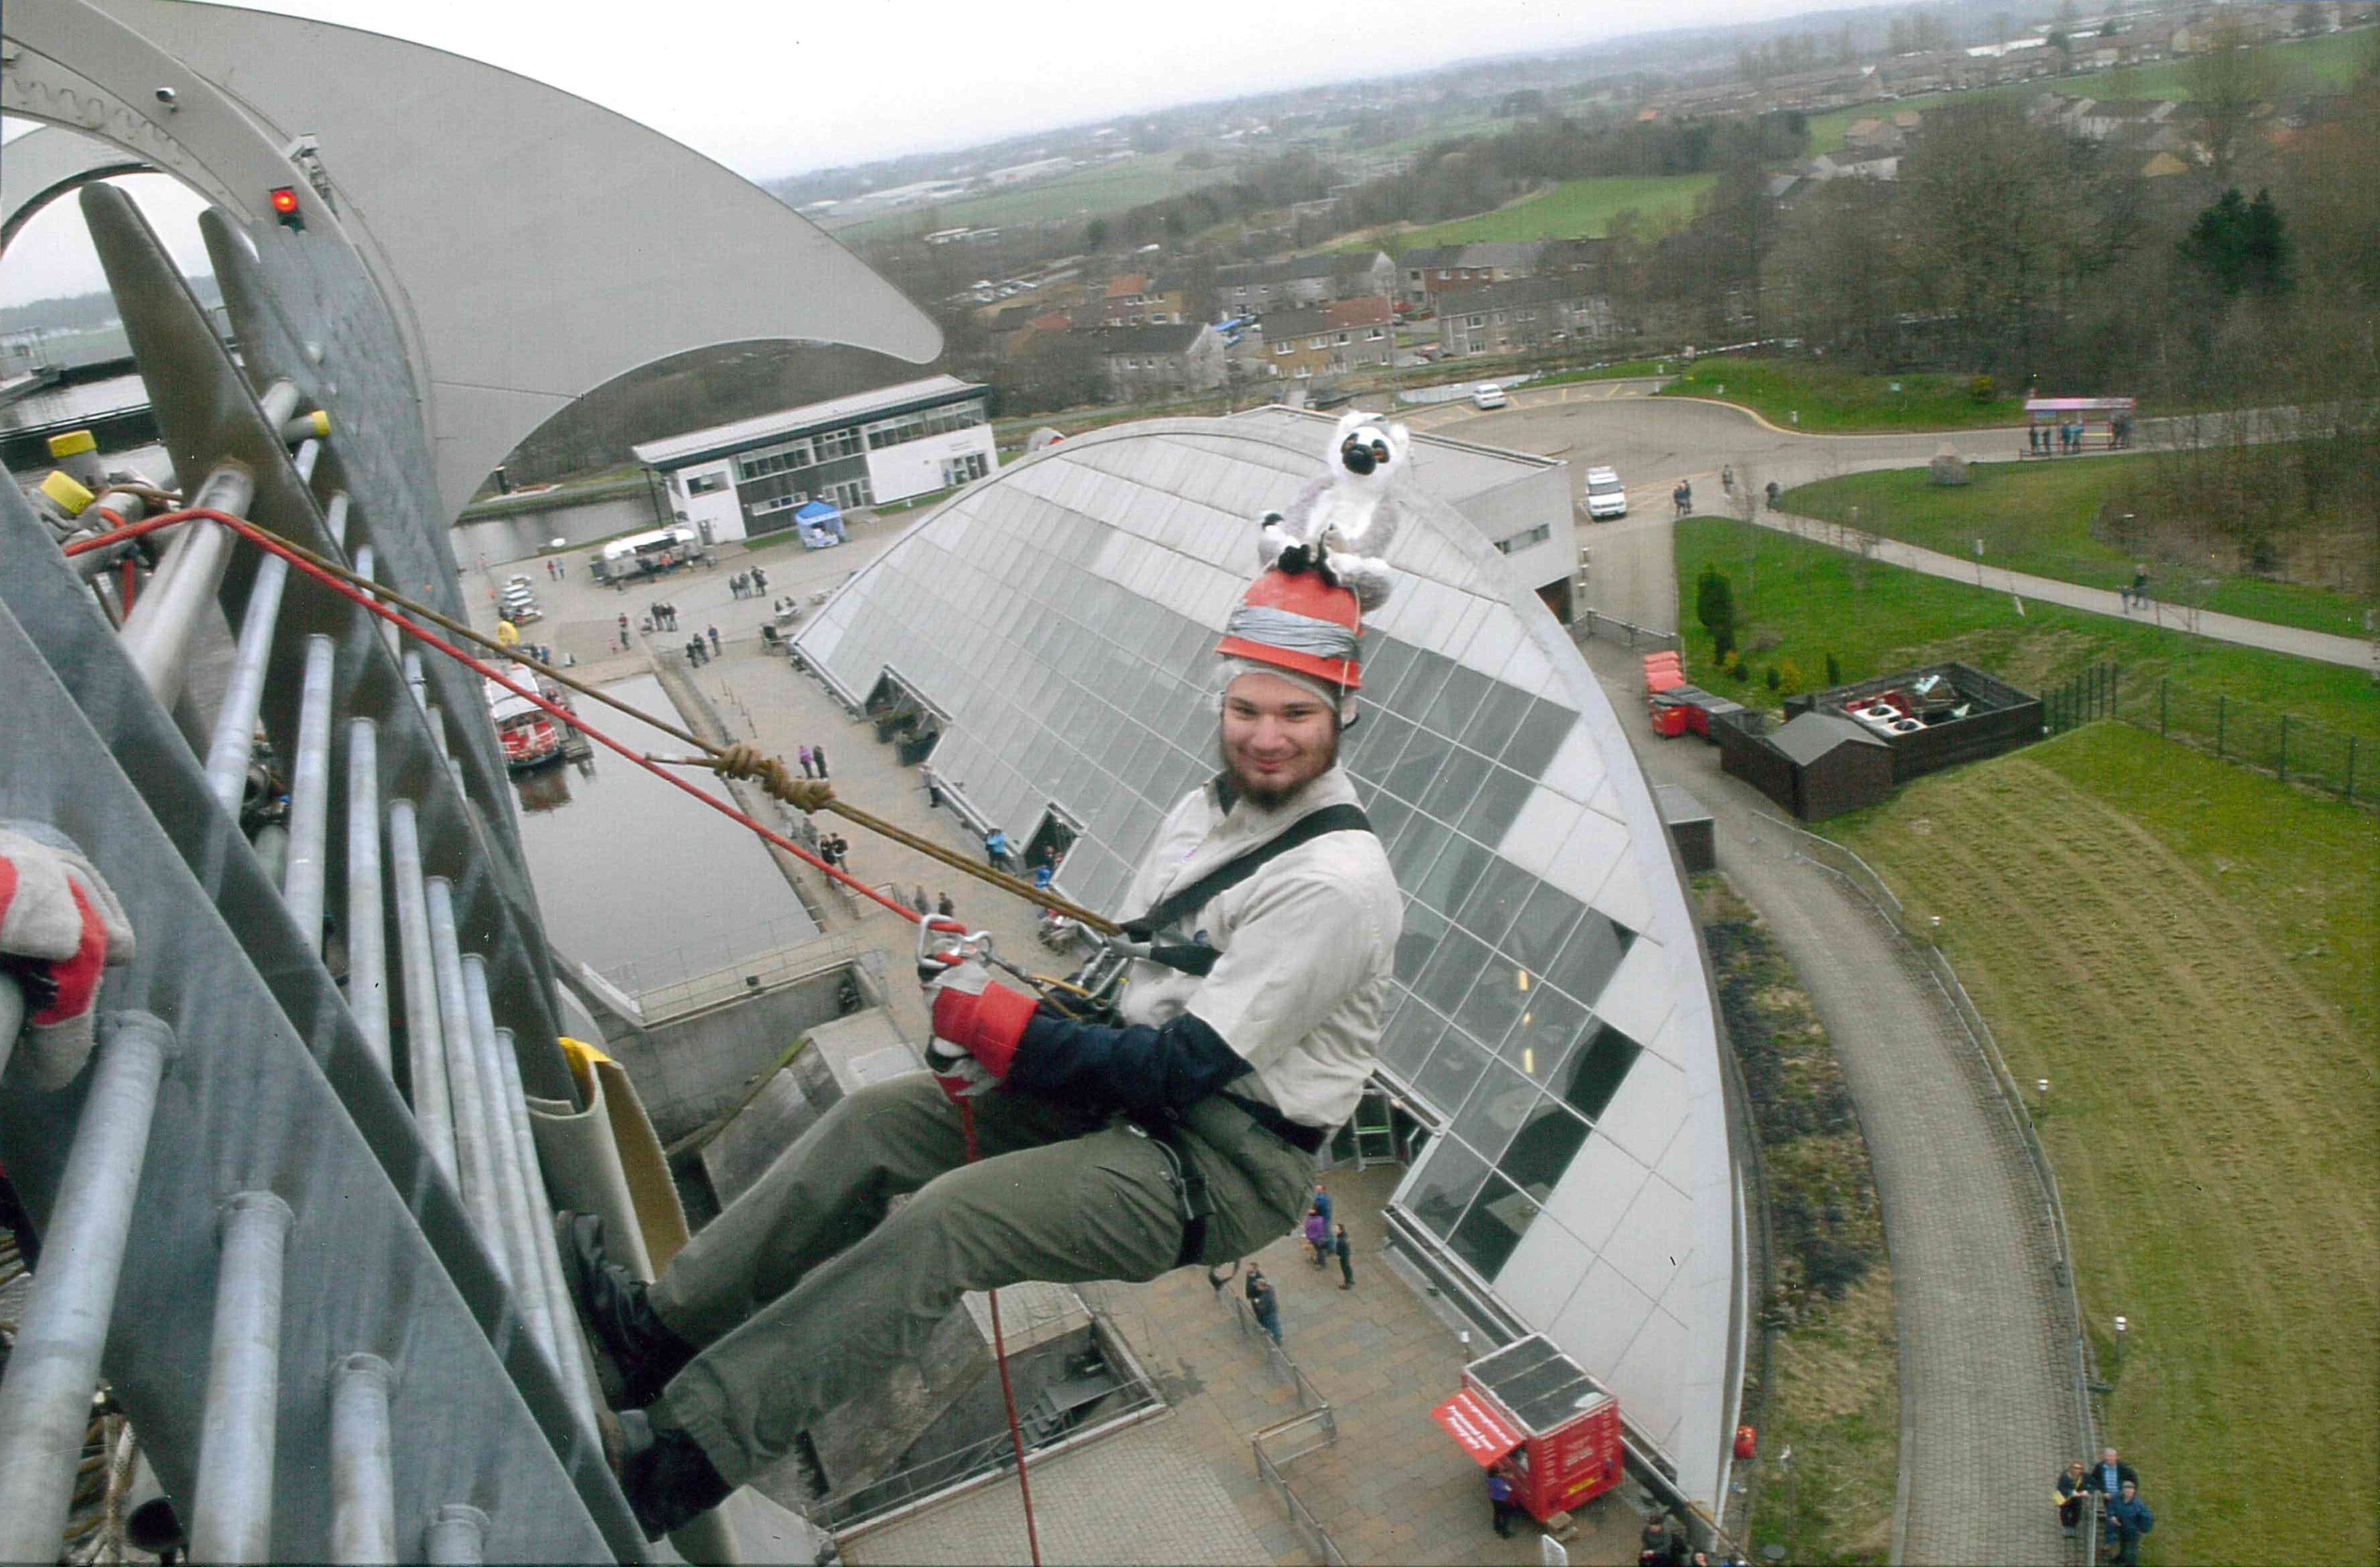 Kieran abseiled down the Falkirk Wheel to raise funds for his trip